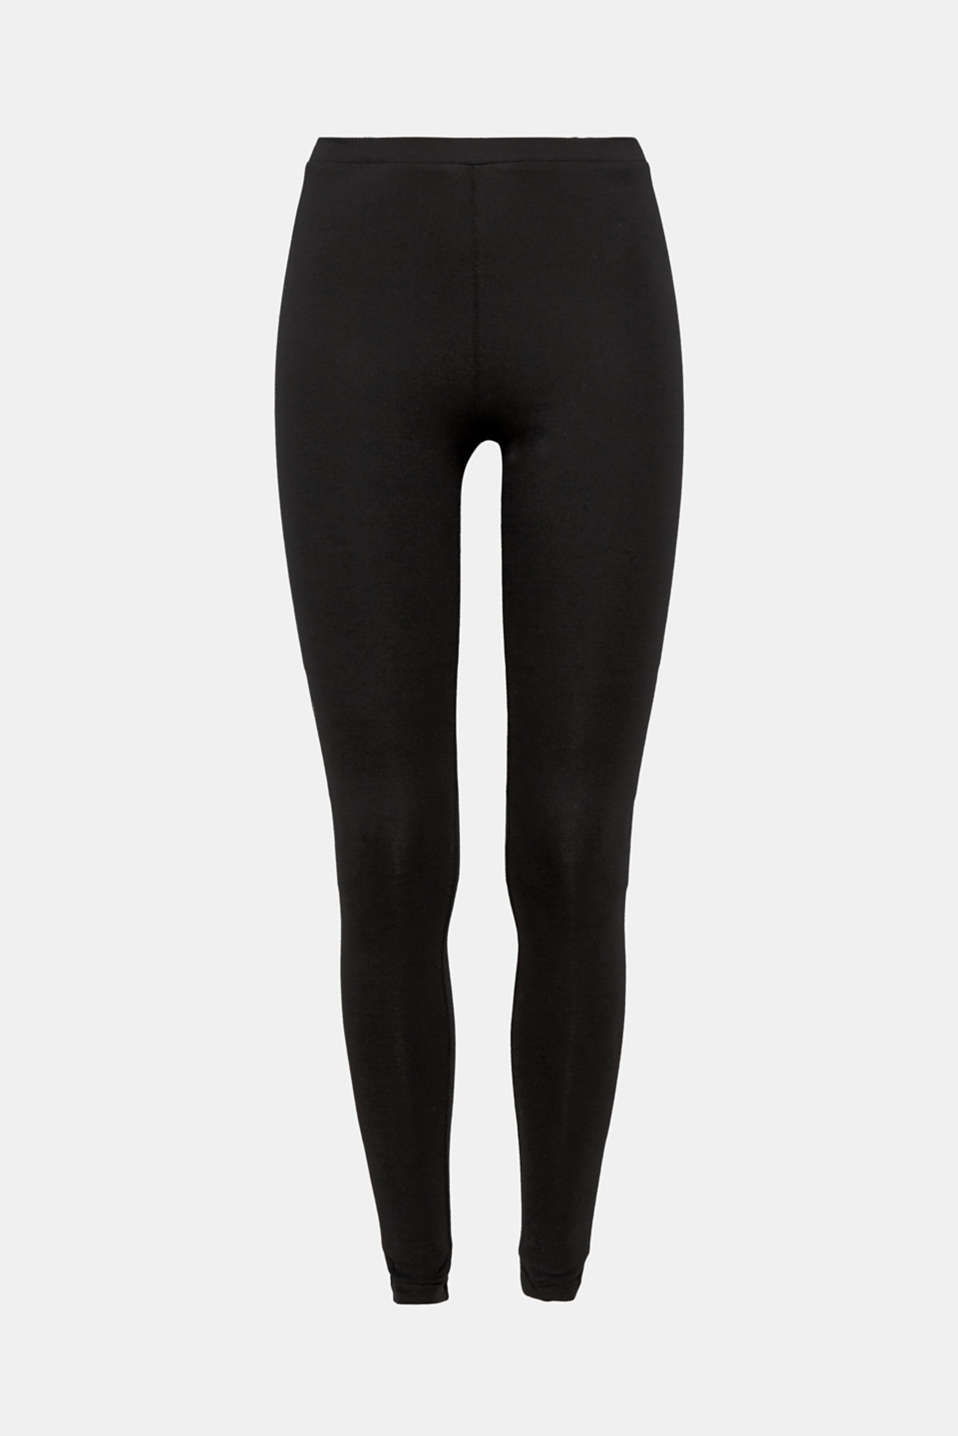 These opaque leggings made of gently processed organic cotton are a must-have basic piece.